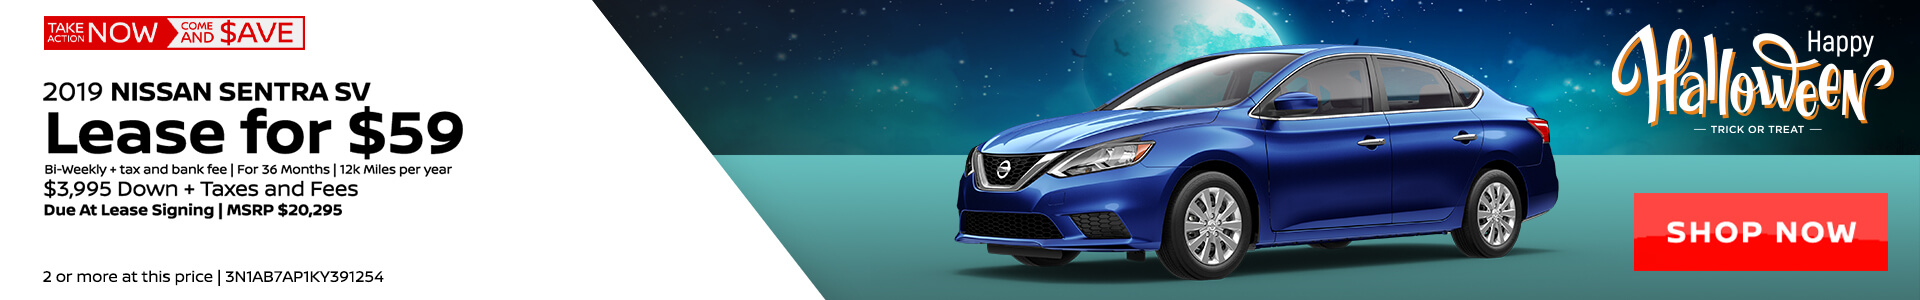 Nissan Sentra $59 Lease